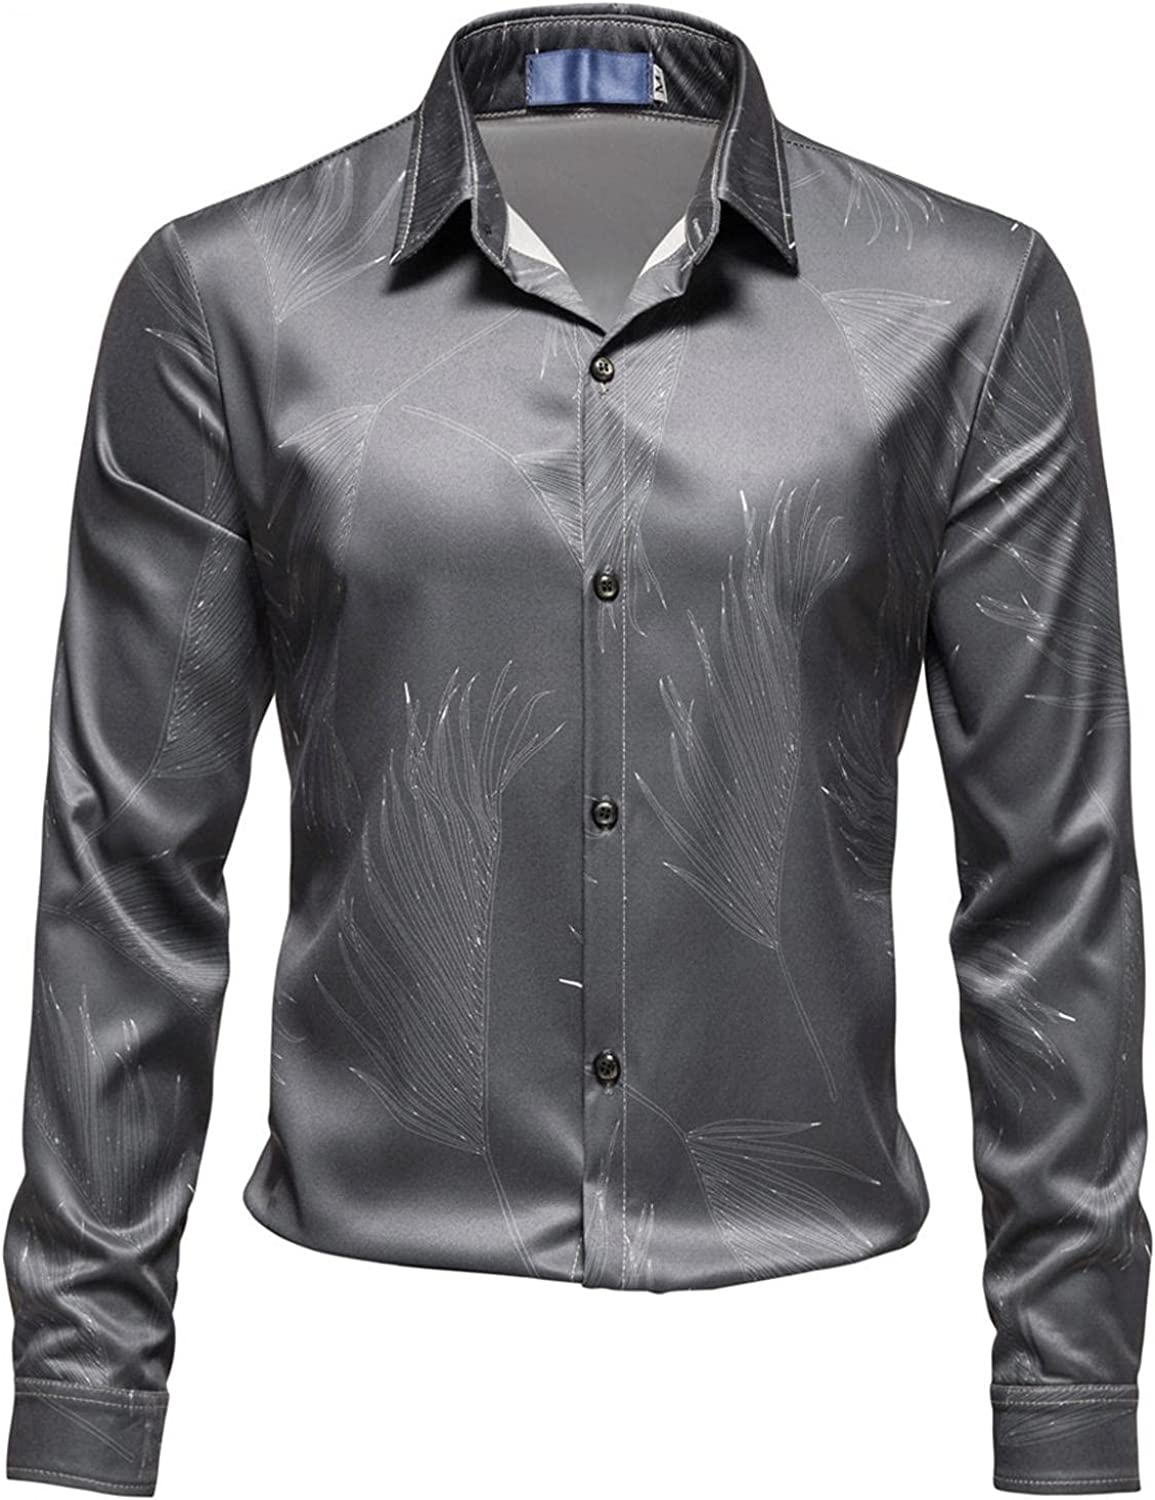 XUNFUN Mens Dress Shirts Business Formal Long Sleeve Button Up Slim Fit Stylish 3D Printed Graphic Shirts Tops Blouse